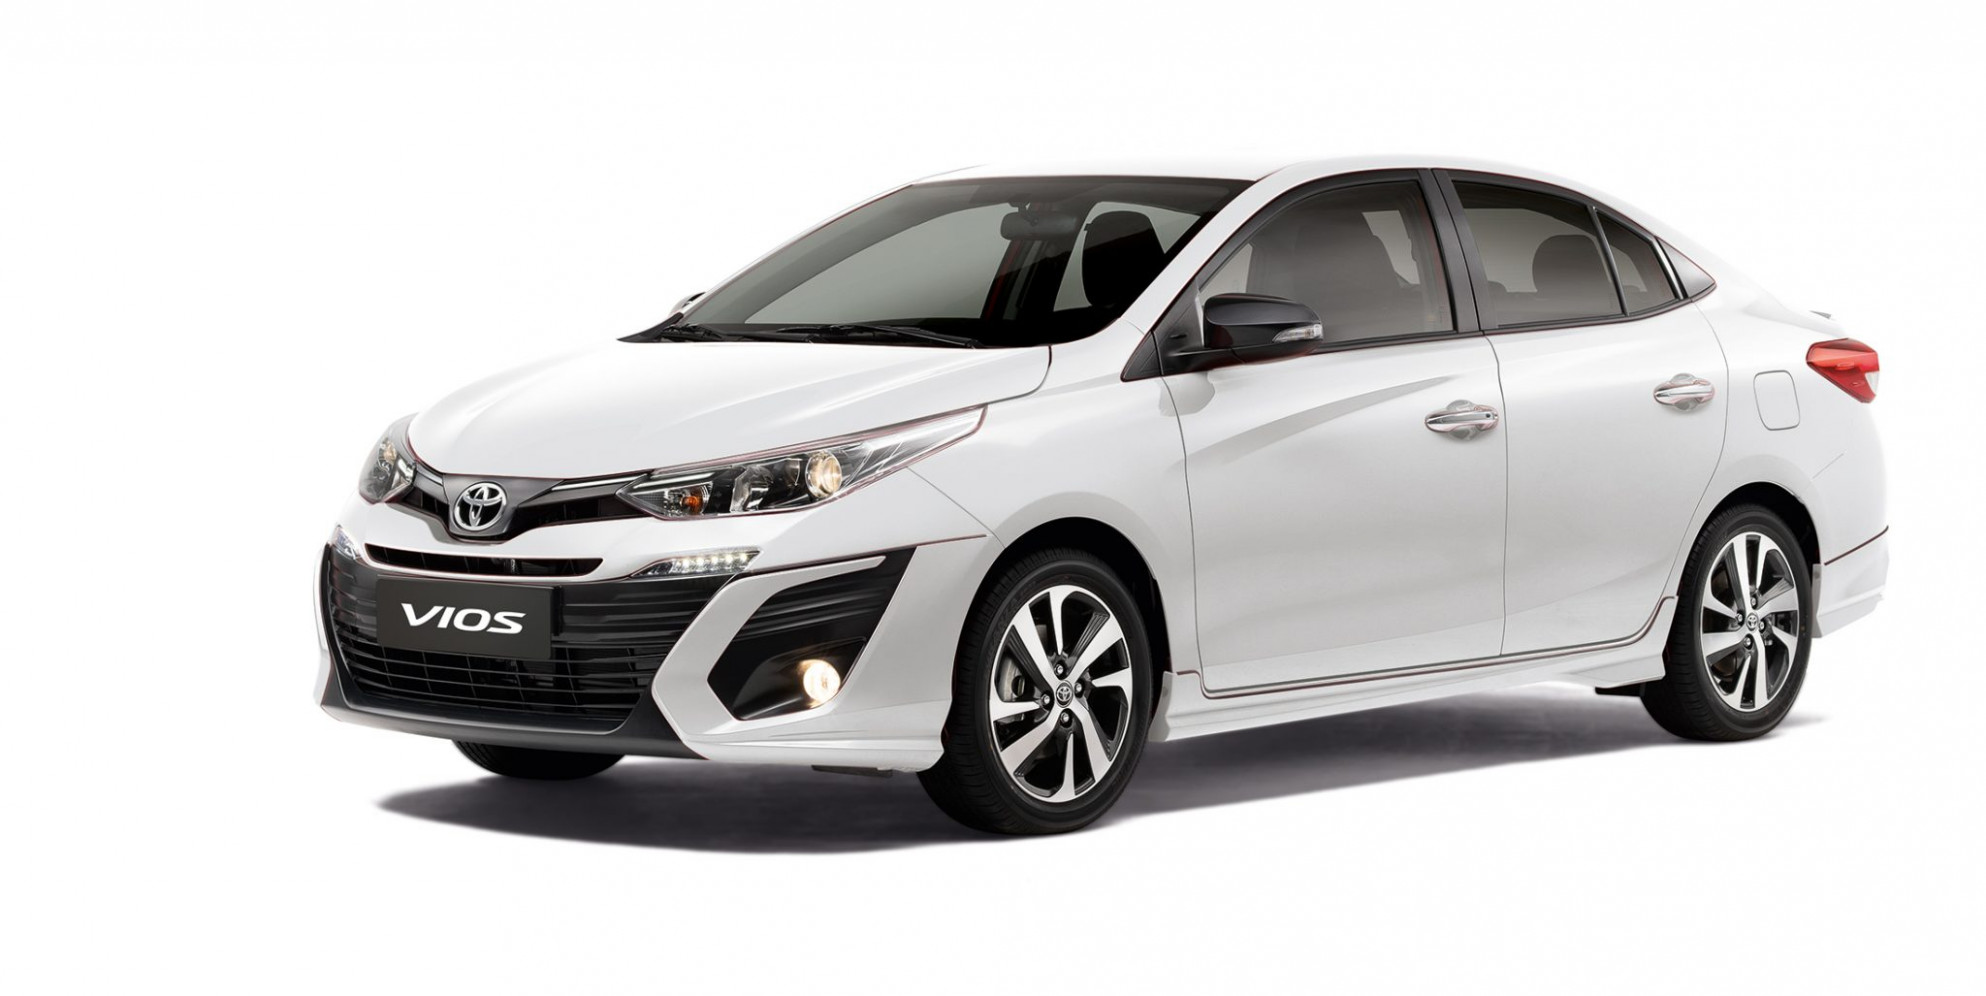 Toyota Vios 11 Philippines Price, Specs and Promos - toyota vios 2020 price